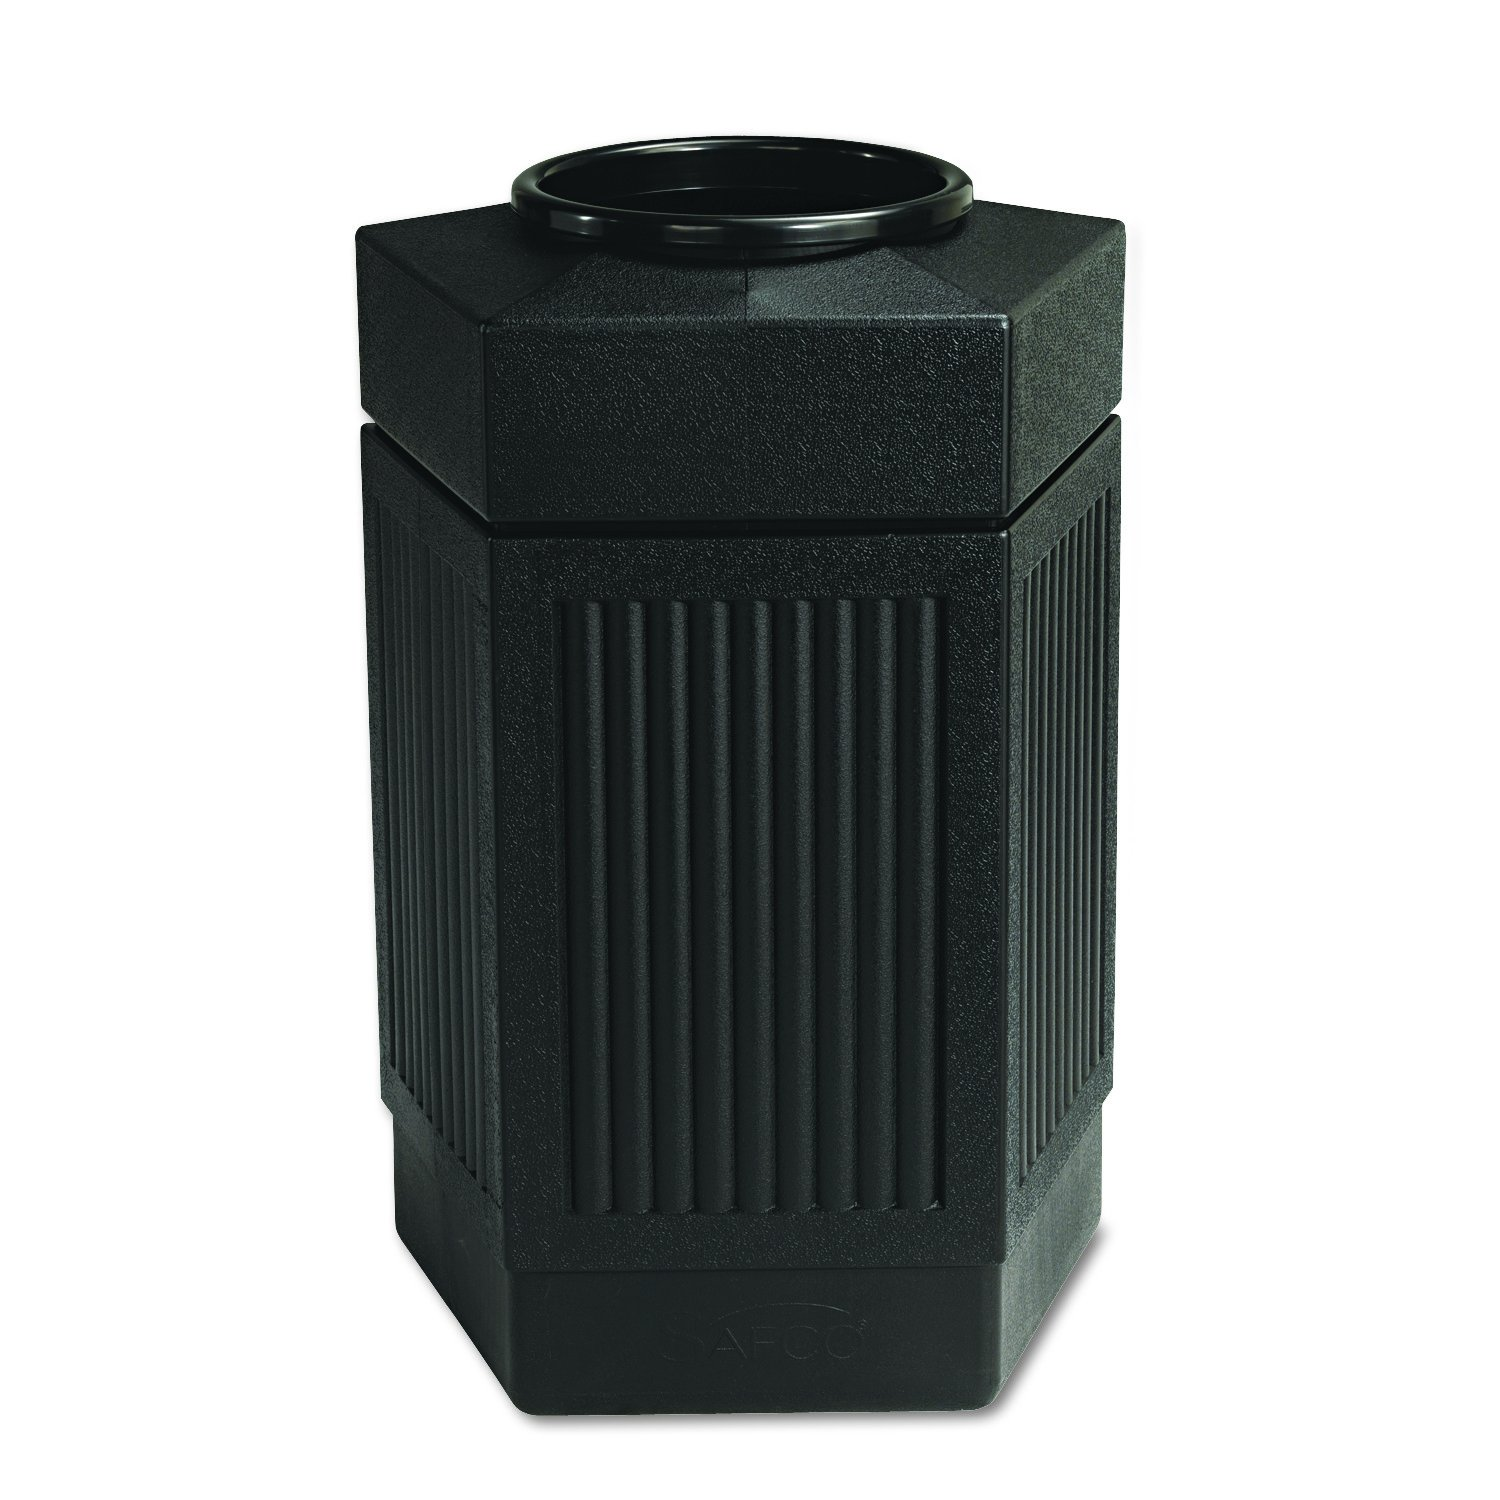 Safco Products Canmeleon Outdoor/Indoor Open Top Pentagon Trash Can 9485BL, Black, Five Fluted Panels, 30-Gallon Capacity by Safco